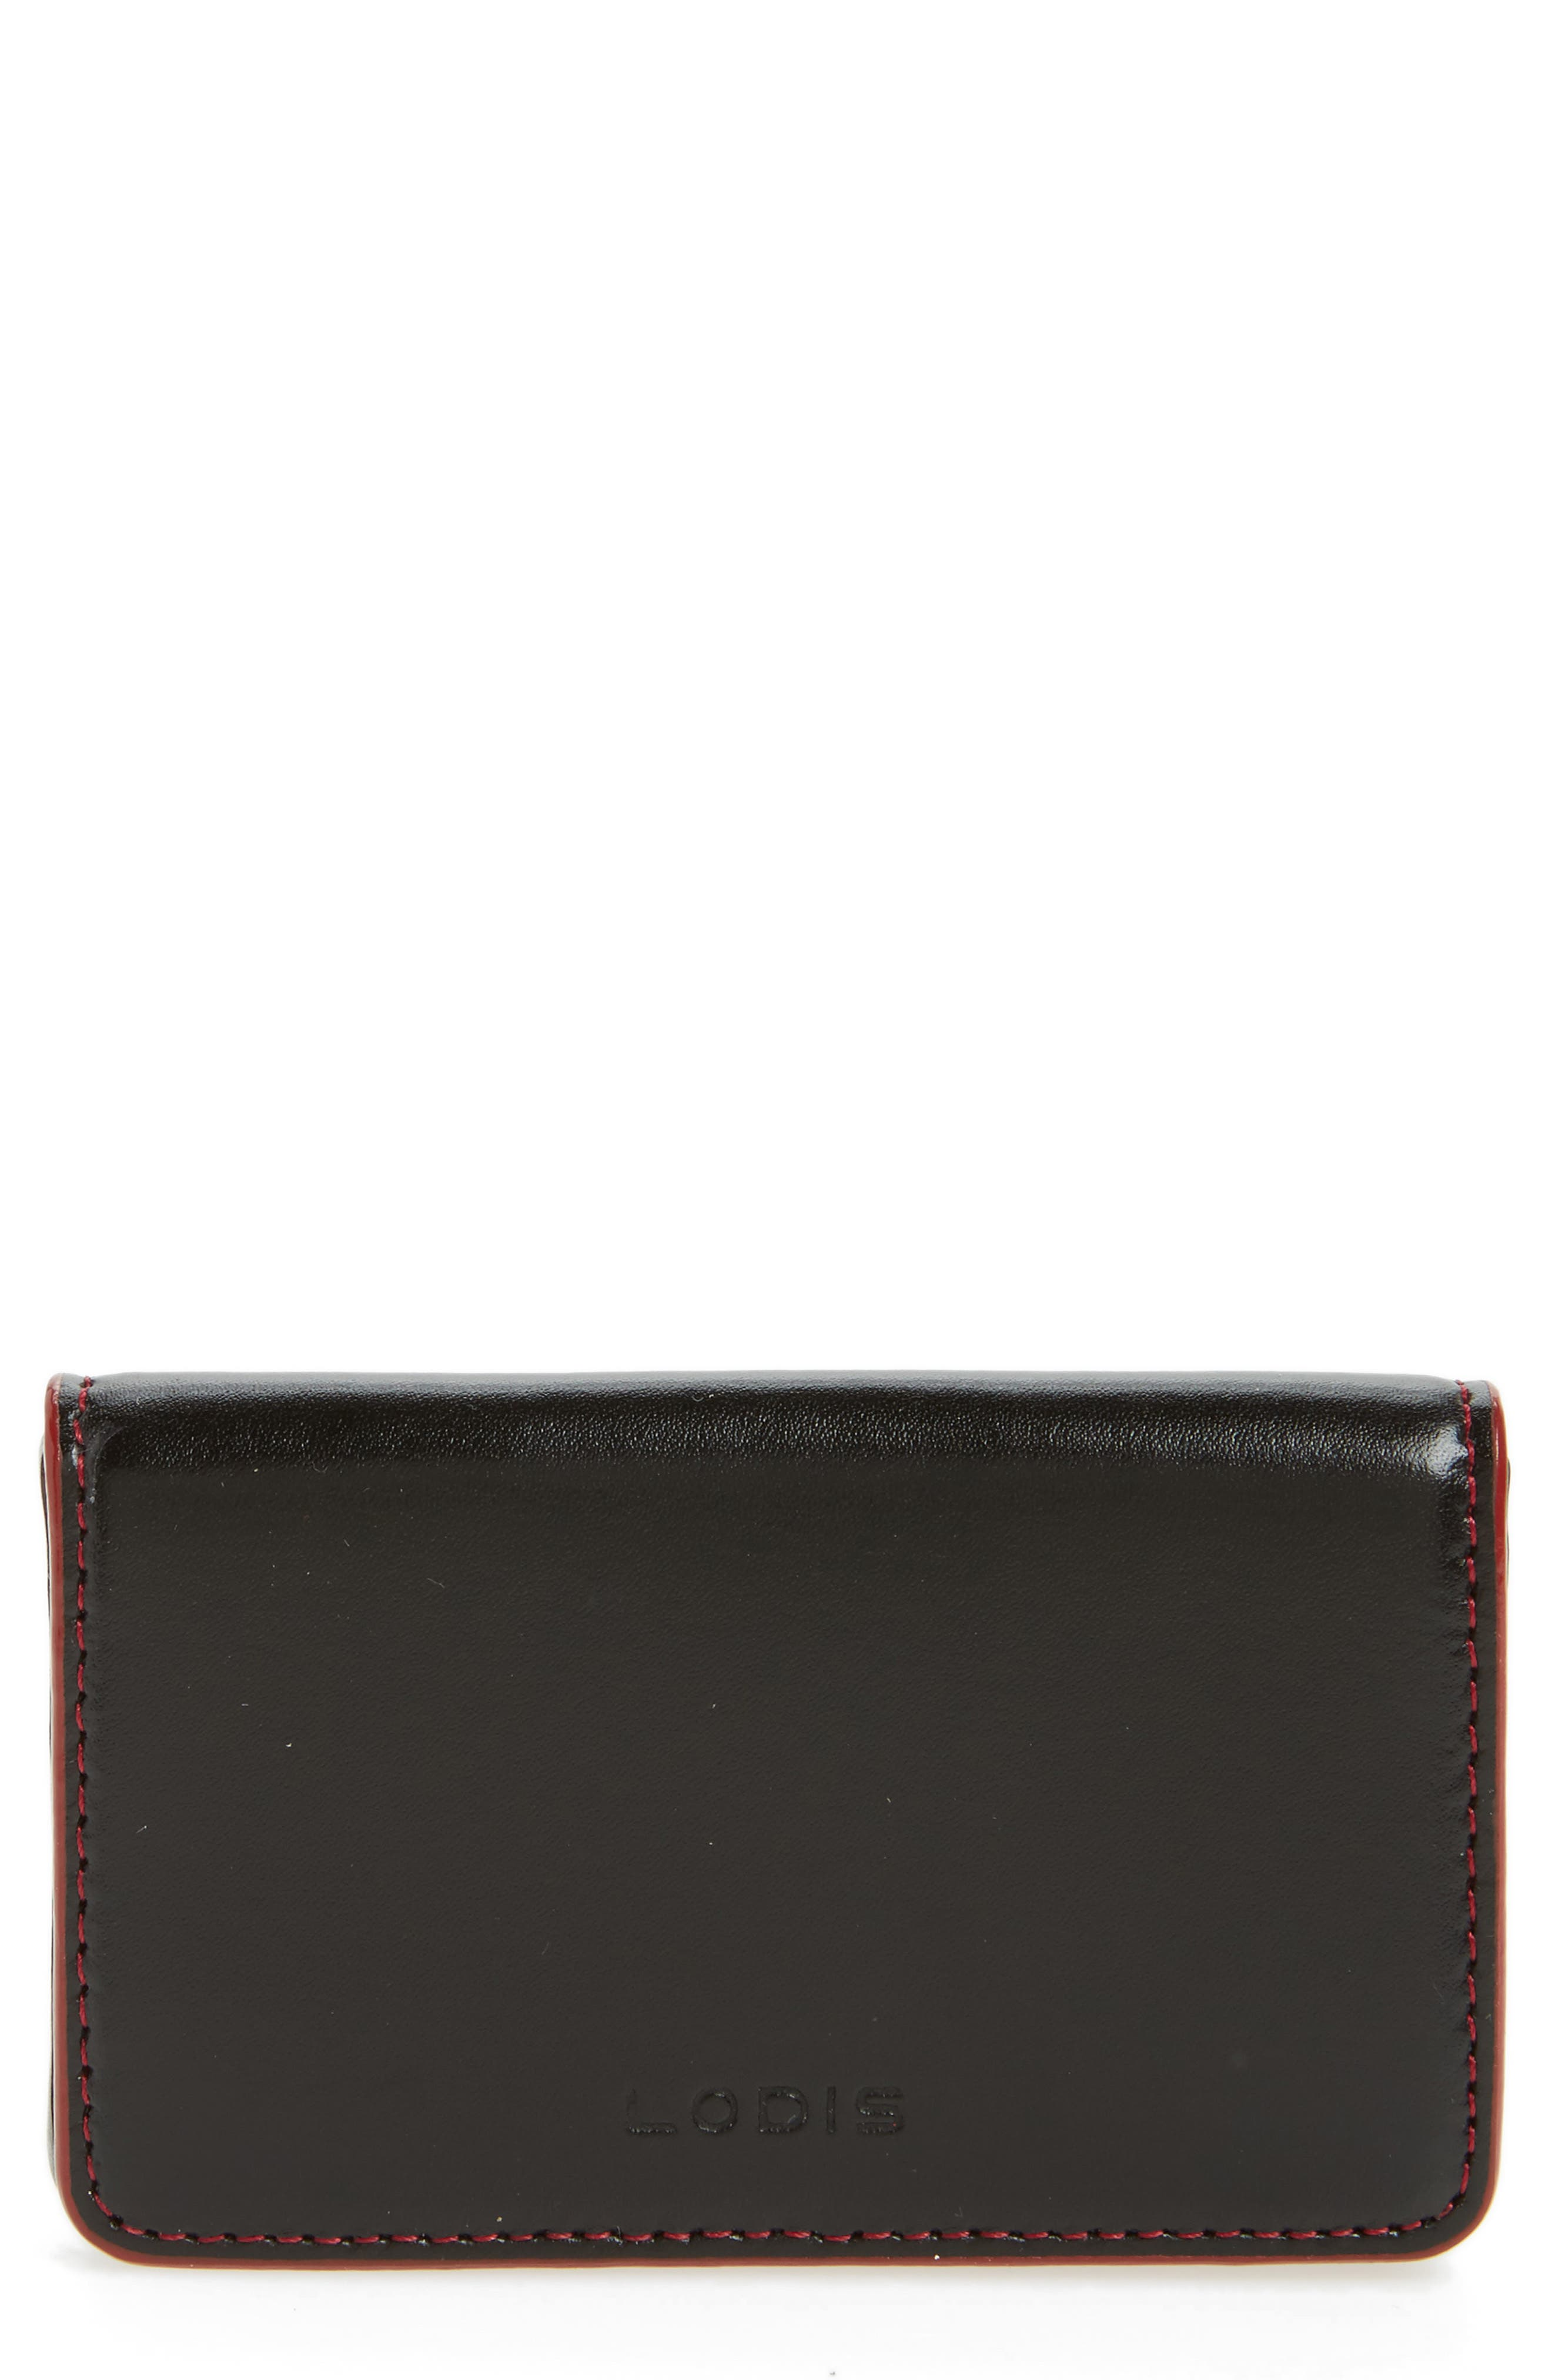 Main Image - Lodis Audrey Under Lock & Key Leather Mini Card Case